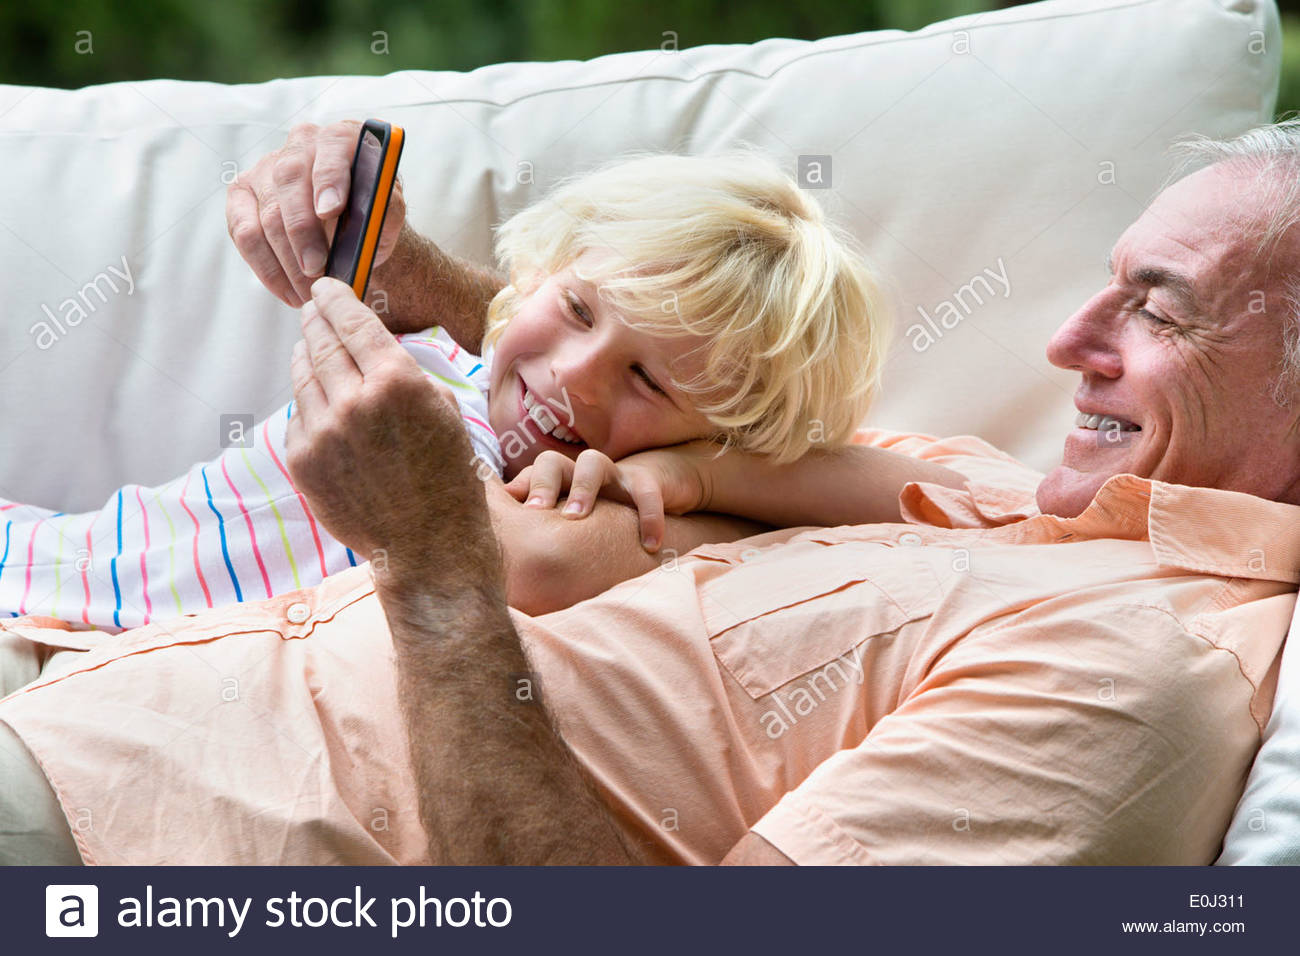 Smiling grandfather and grandson laying on outdoor sofa with digital tablet - Stock Image